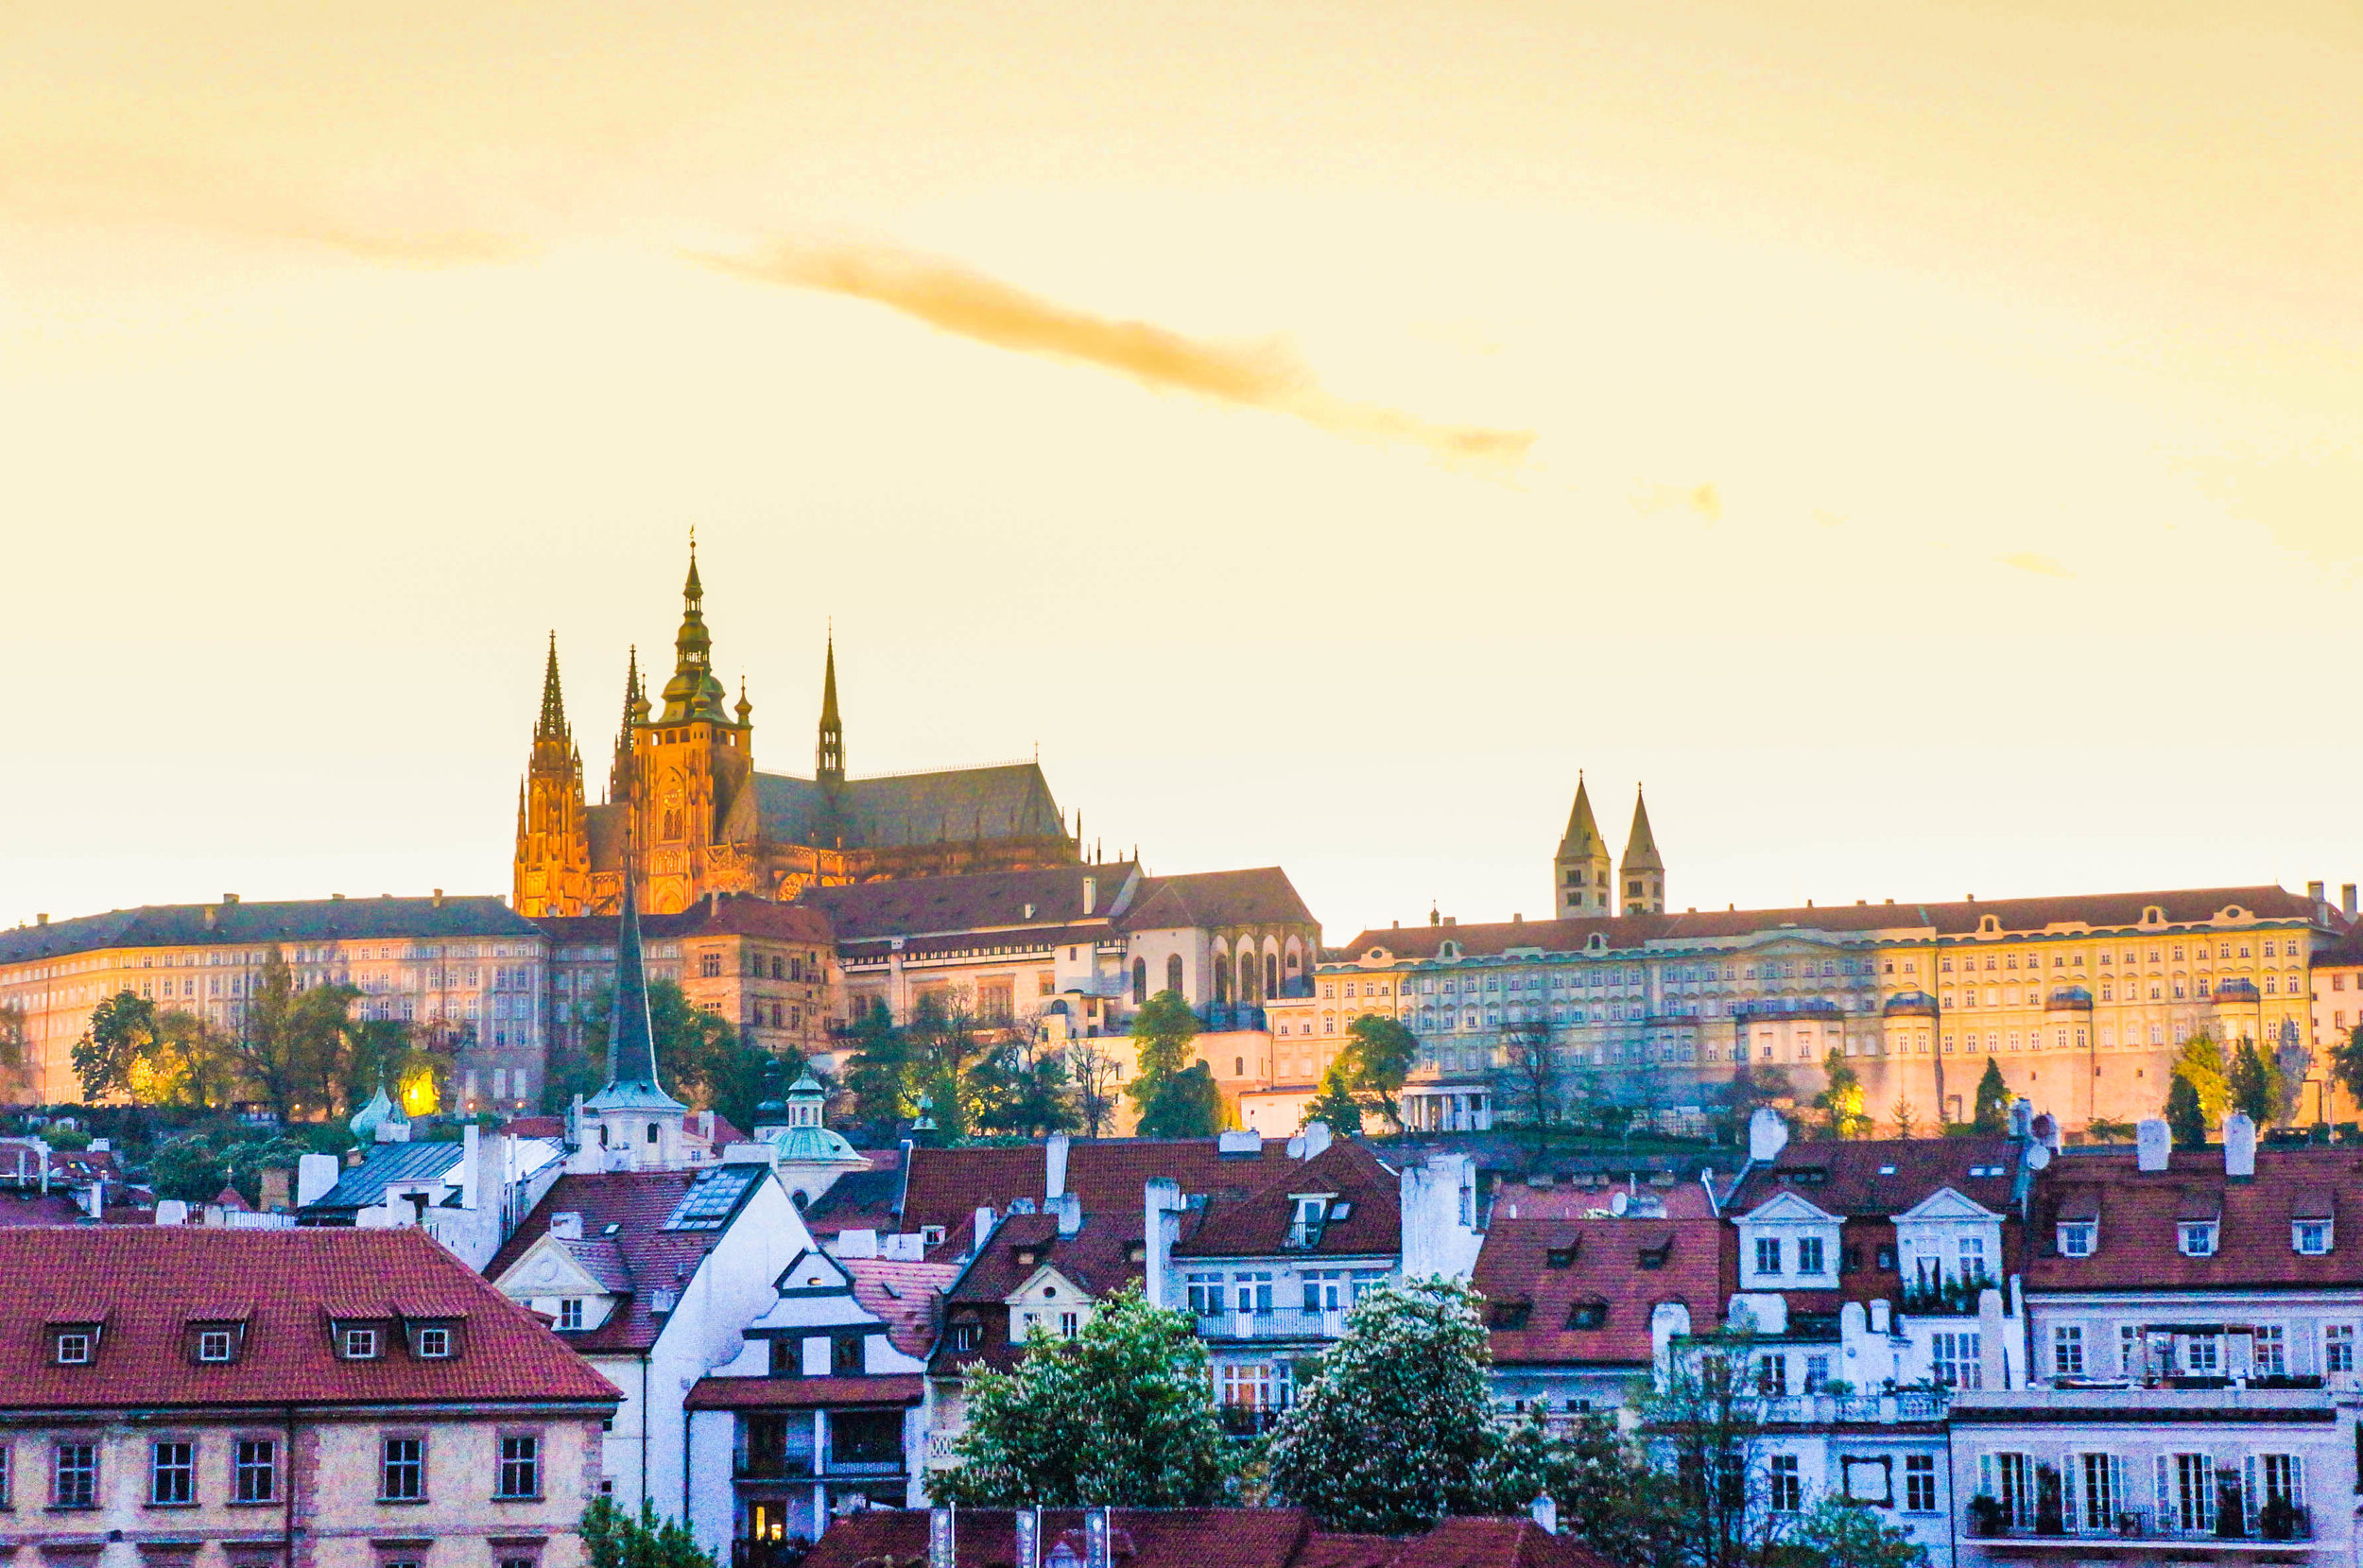 Prague Castle from afar